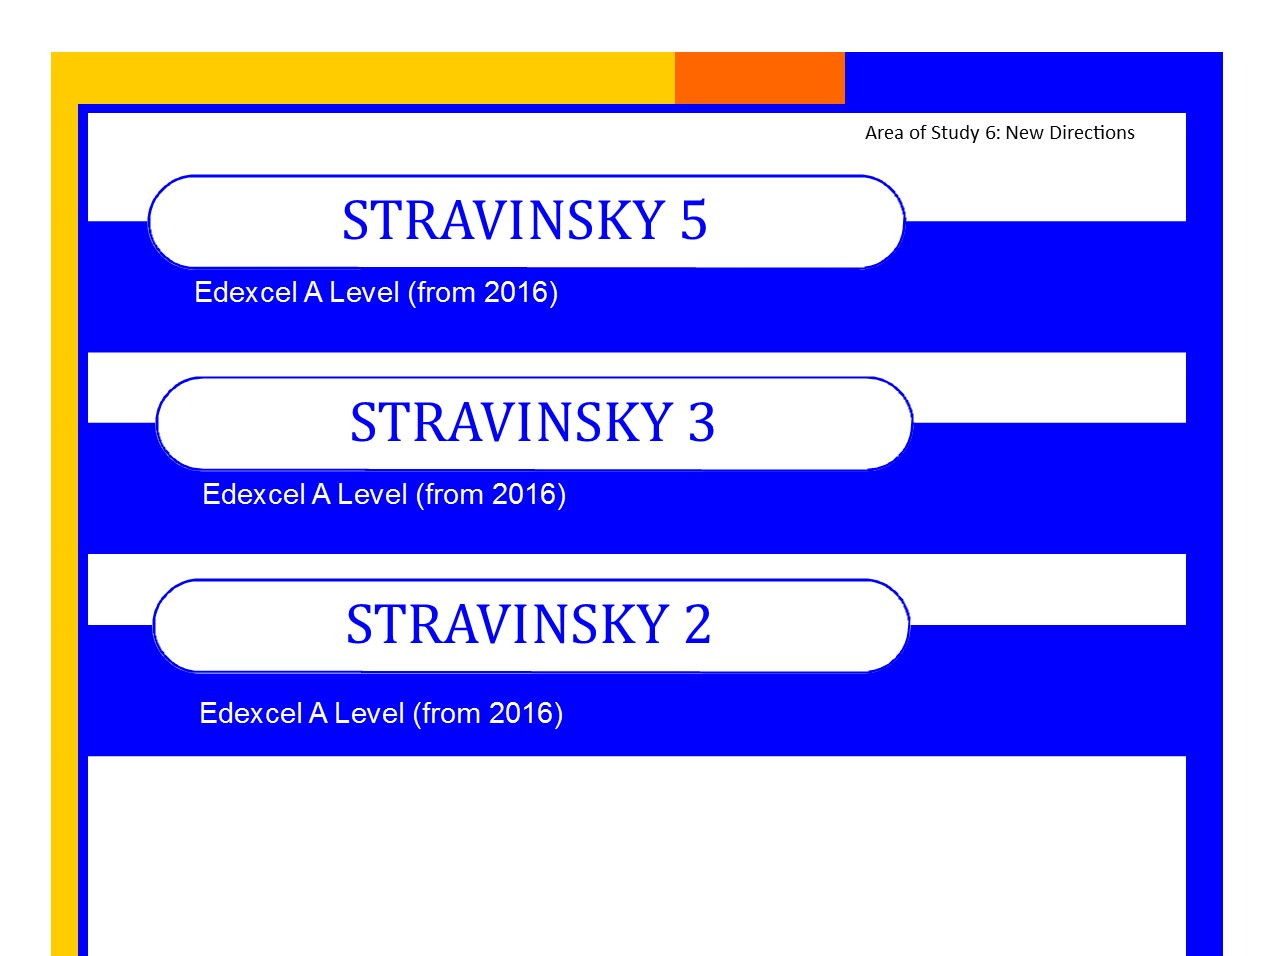 Bundle+ of Edexcel Music A level (from 2016) Stravinsky worksheets 2,3 and 5 PLUS Elements of Music summary sheets.